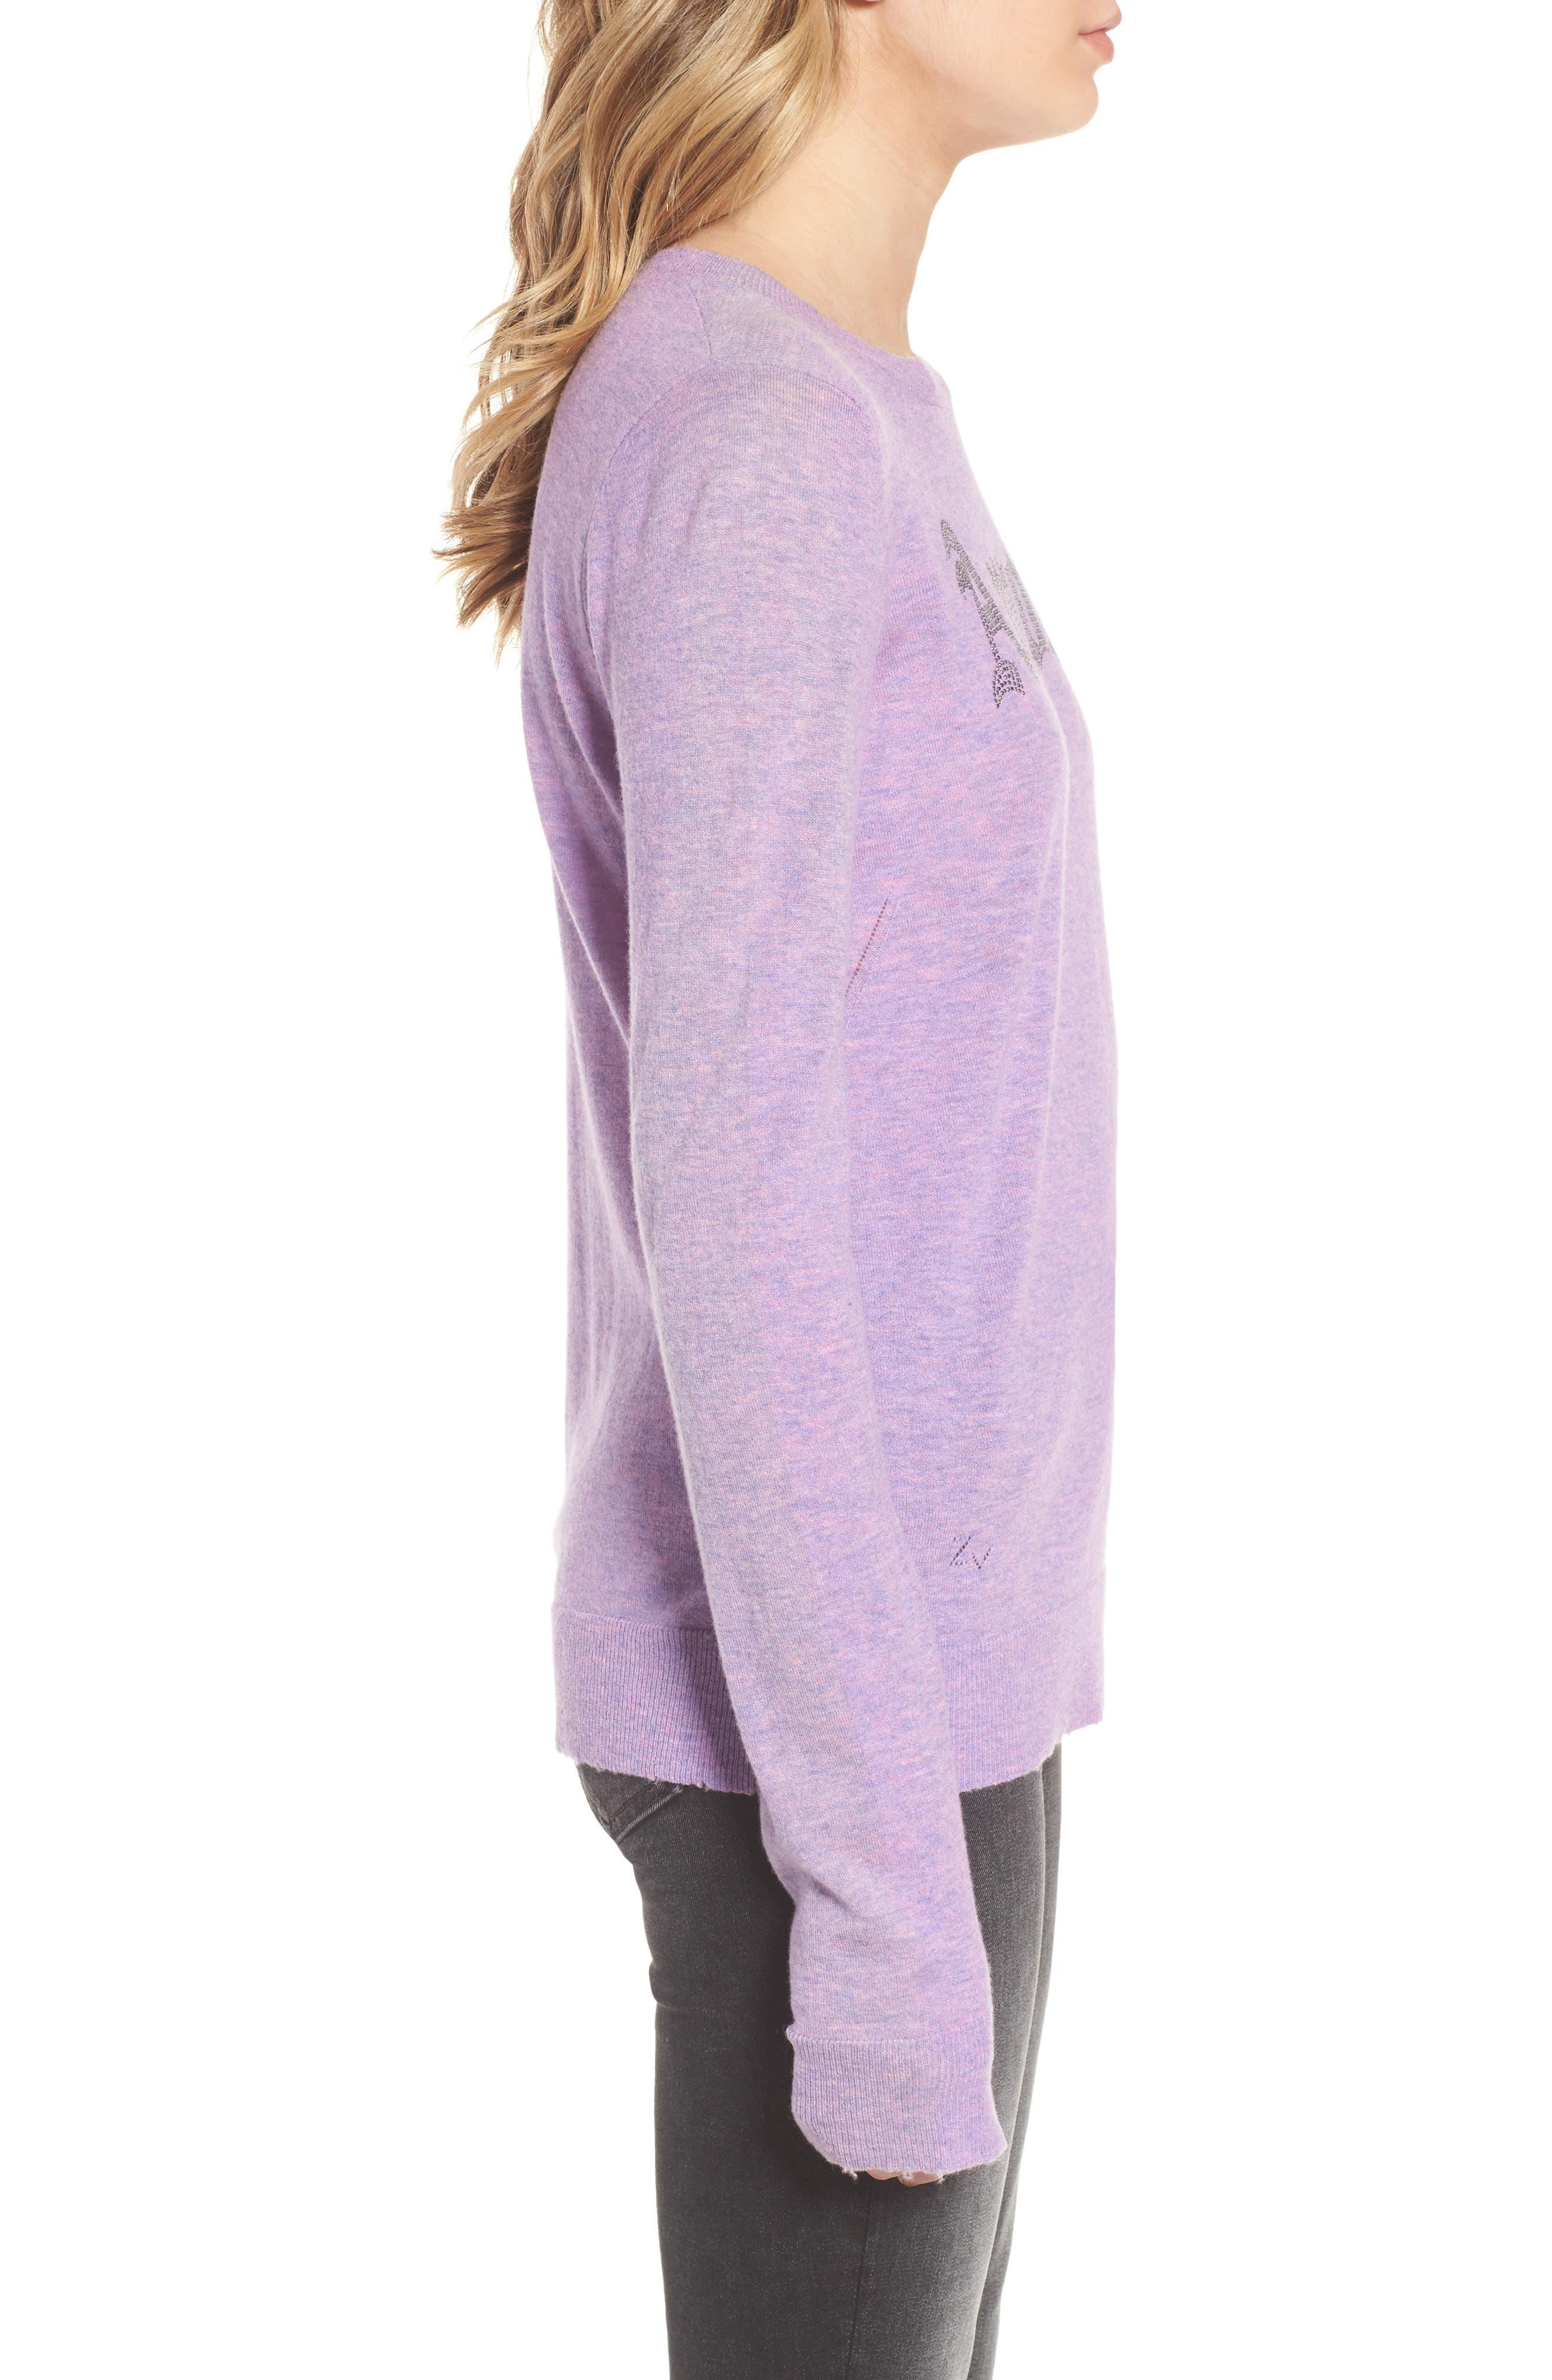 Miss Bis Cashmere Sweater,                             Alternate thumbnail 3, color,                             Lilac